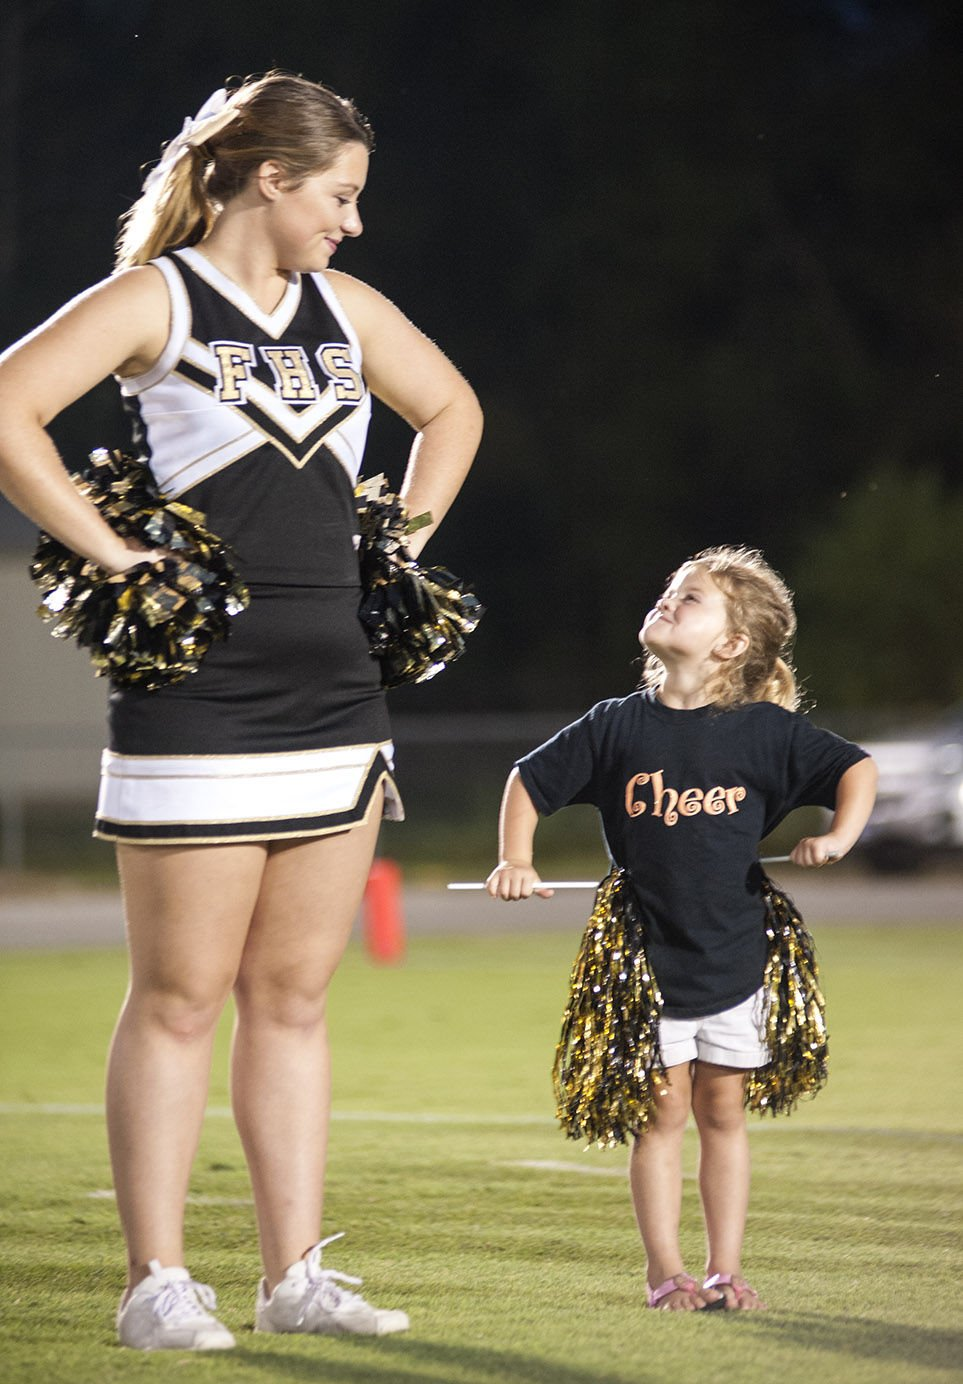 FRIDAY NIGHT SCENE OF THE WEEK: Fayetteville youth cheer squads enjoy spirit walk